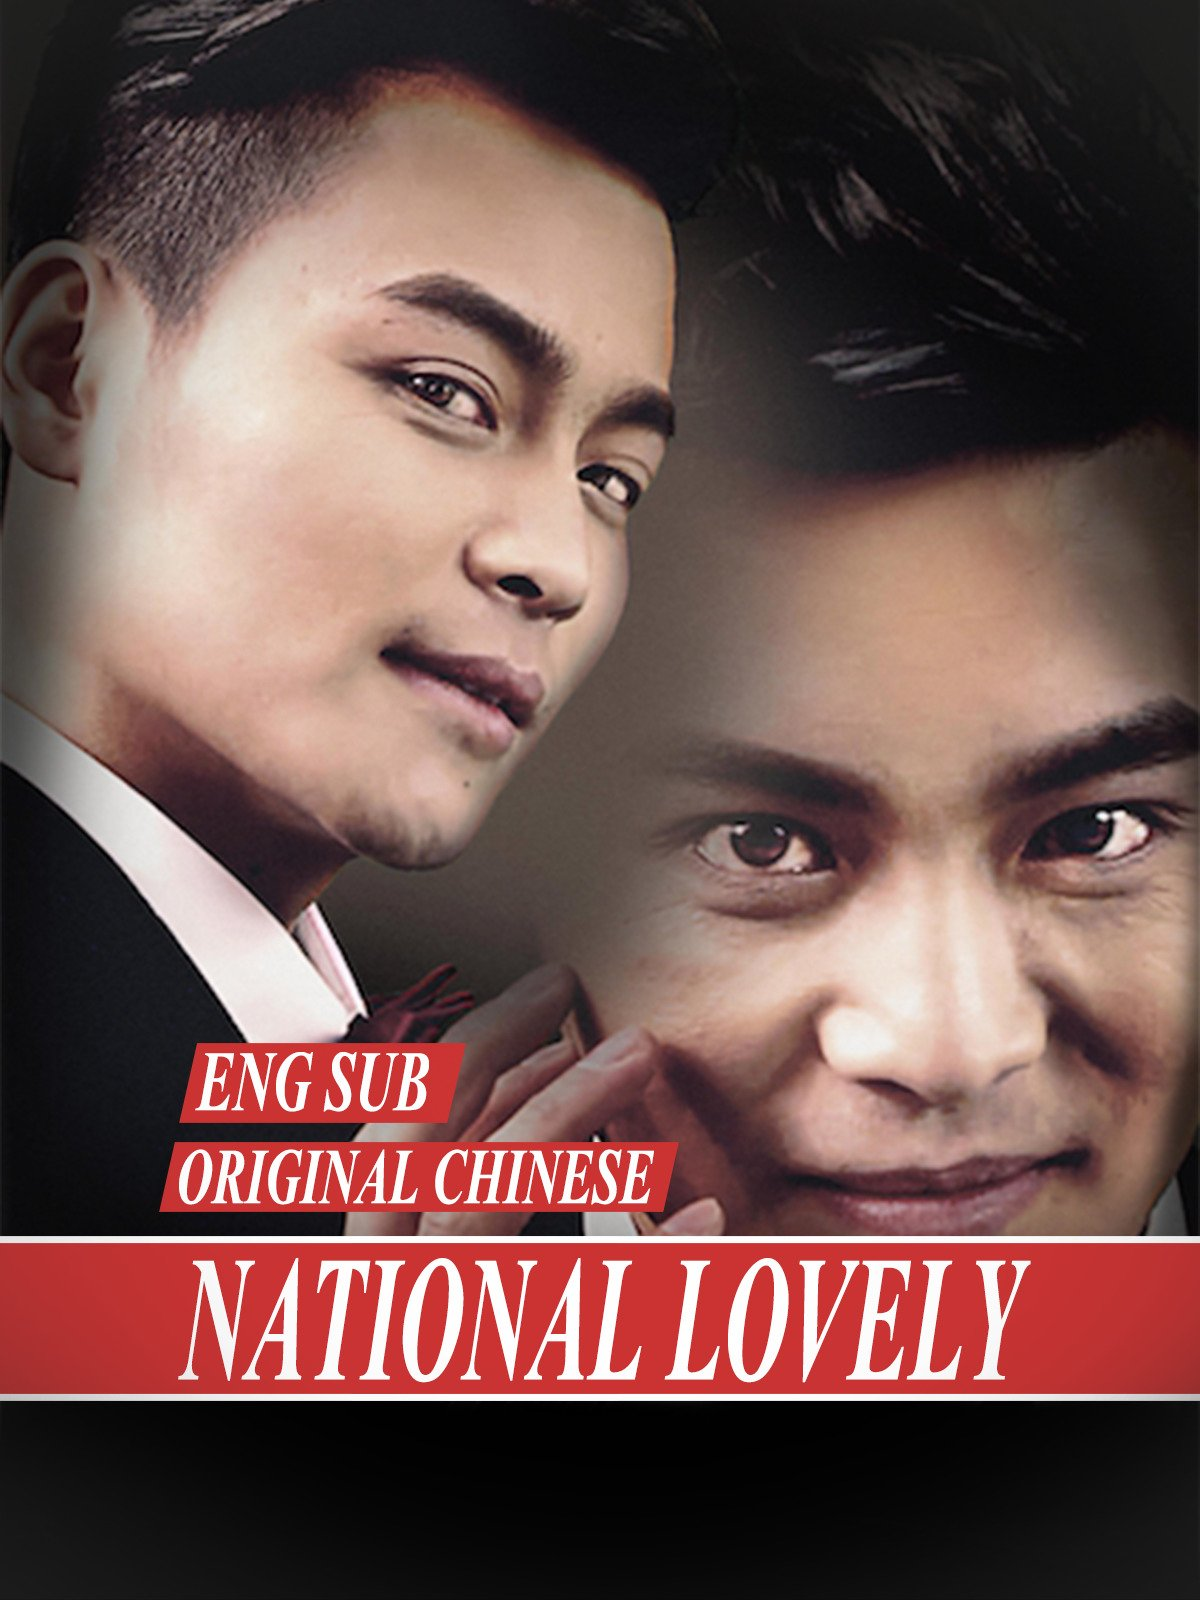 National Lovely [Eng Sub] original Chinese